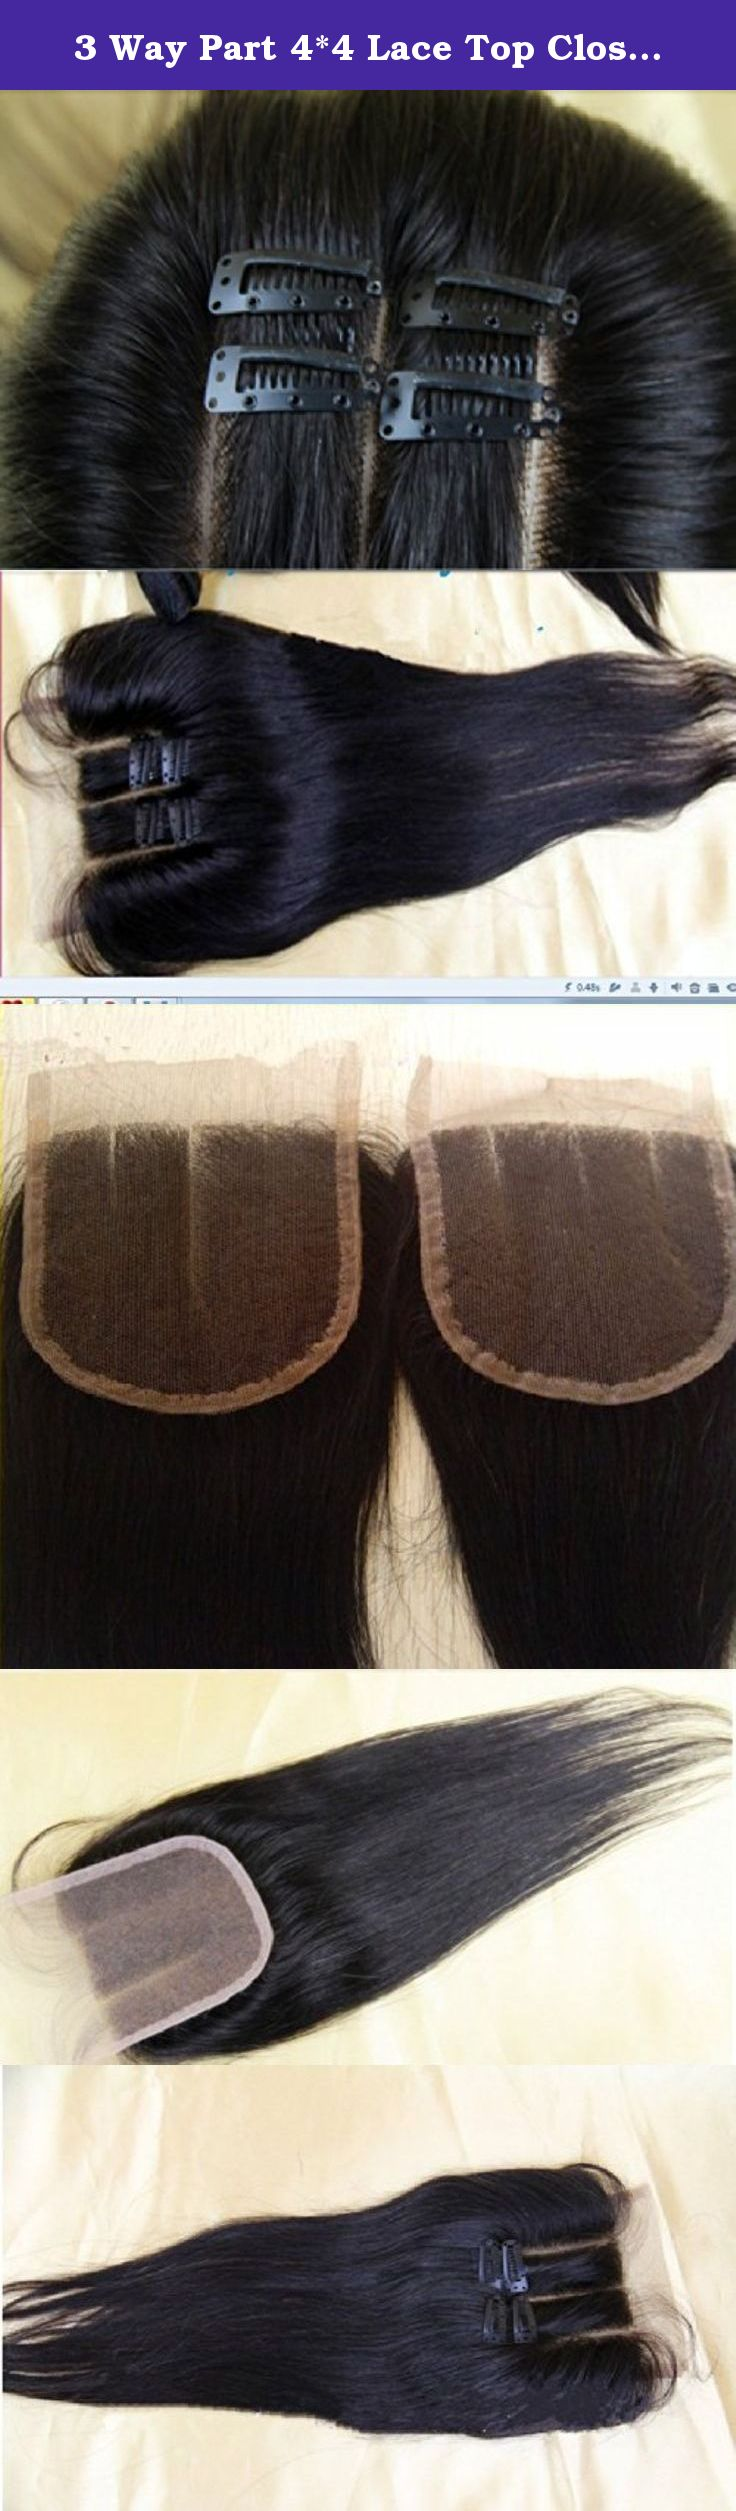 """3 Way Part 4*4 Lace Top Closure 12"""" Indian Virgin Remy Hair Straight natural colour Can Be Dyed trademark:hairpr. Lace Top Closure .Straight. Closure Size: 4""""*4"""" 12"""" Color:natural colour.A+++++ hair .This hair Can be ironed,Can be restyle. Quantity:1 piece 100% human hair No synthetic fibers or animal mixtures. Grade A+++ ++VIRGIN hair and multiple layers handsewn work give you plenty of styling options by curling Expedited fast International Standard delivery 7-14days Fast delivery…"""